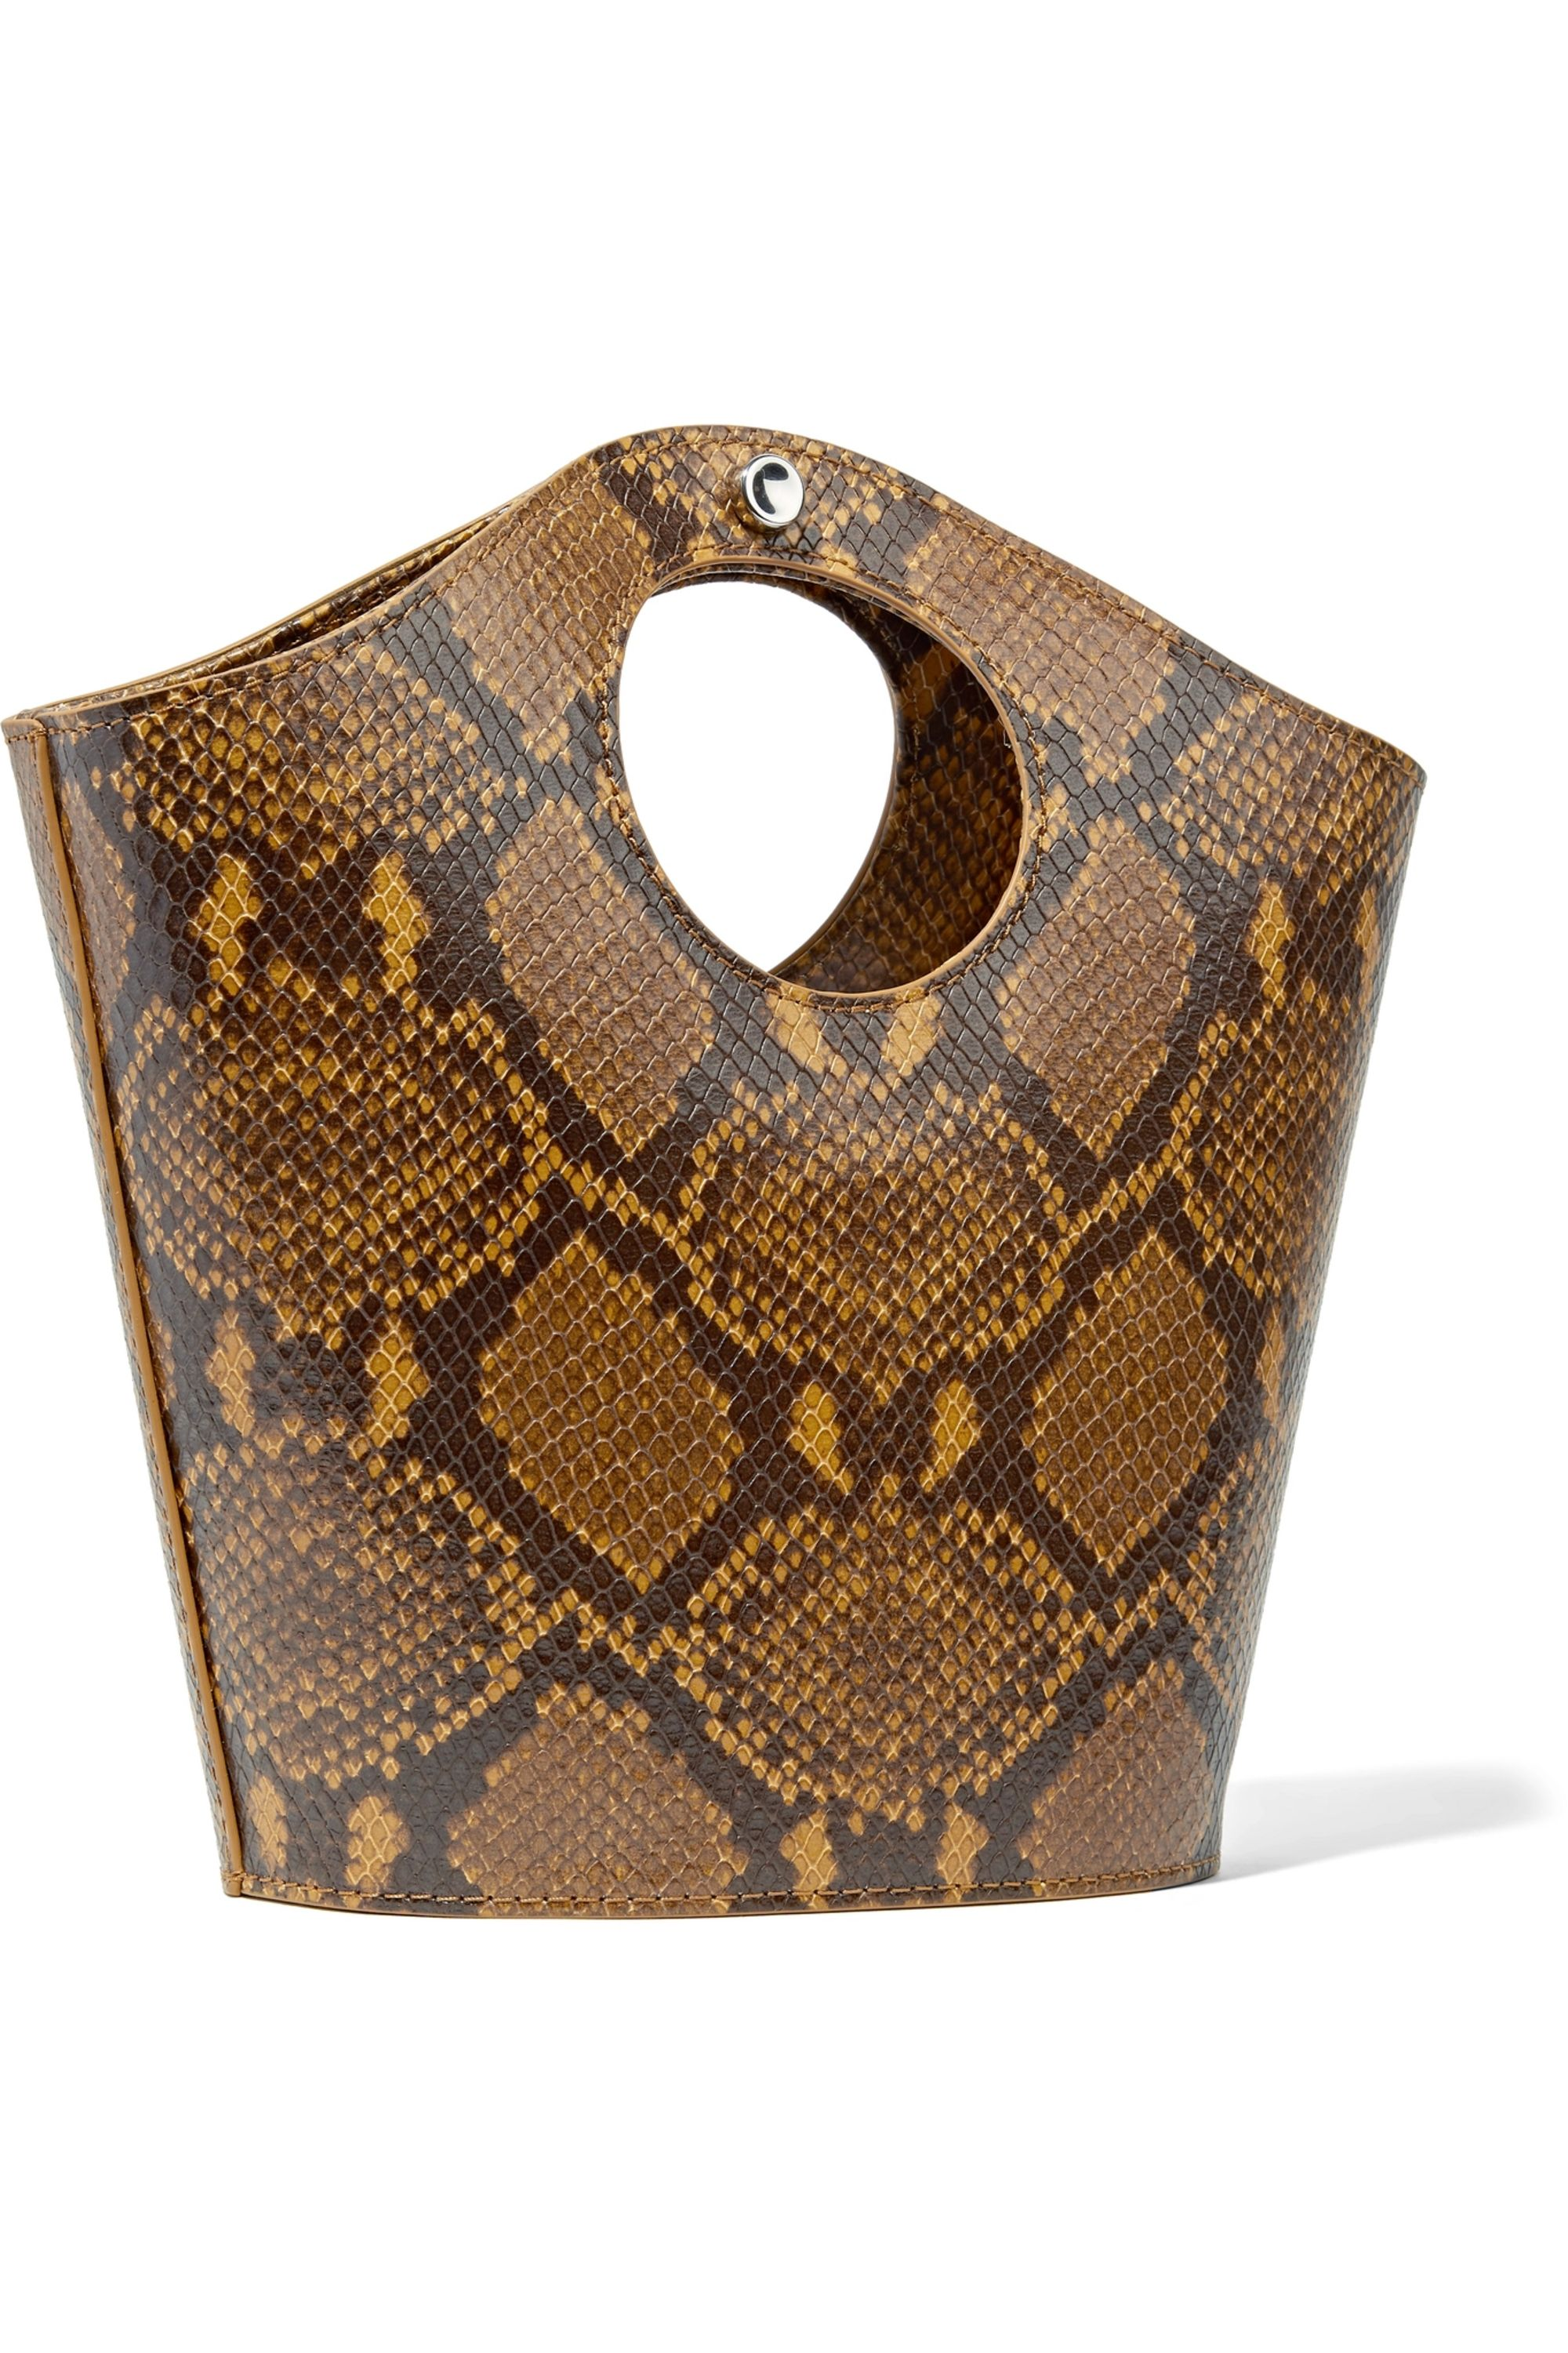 Elizabeth and James Market Shopper small snake-effect leather tote